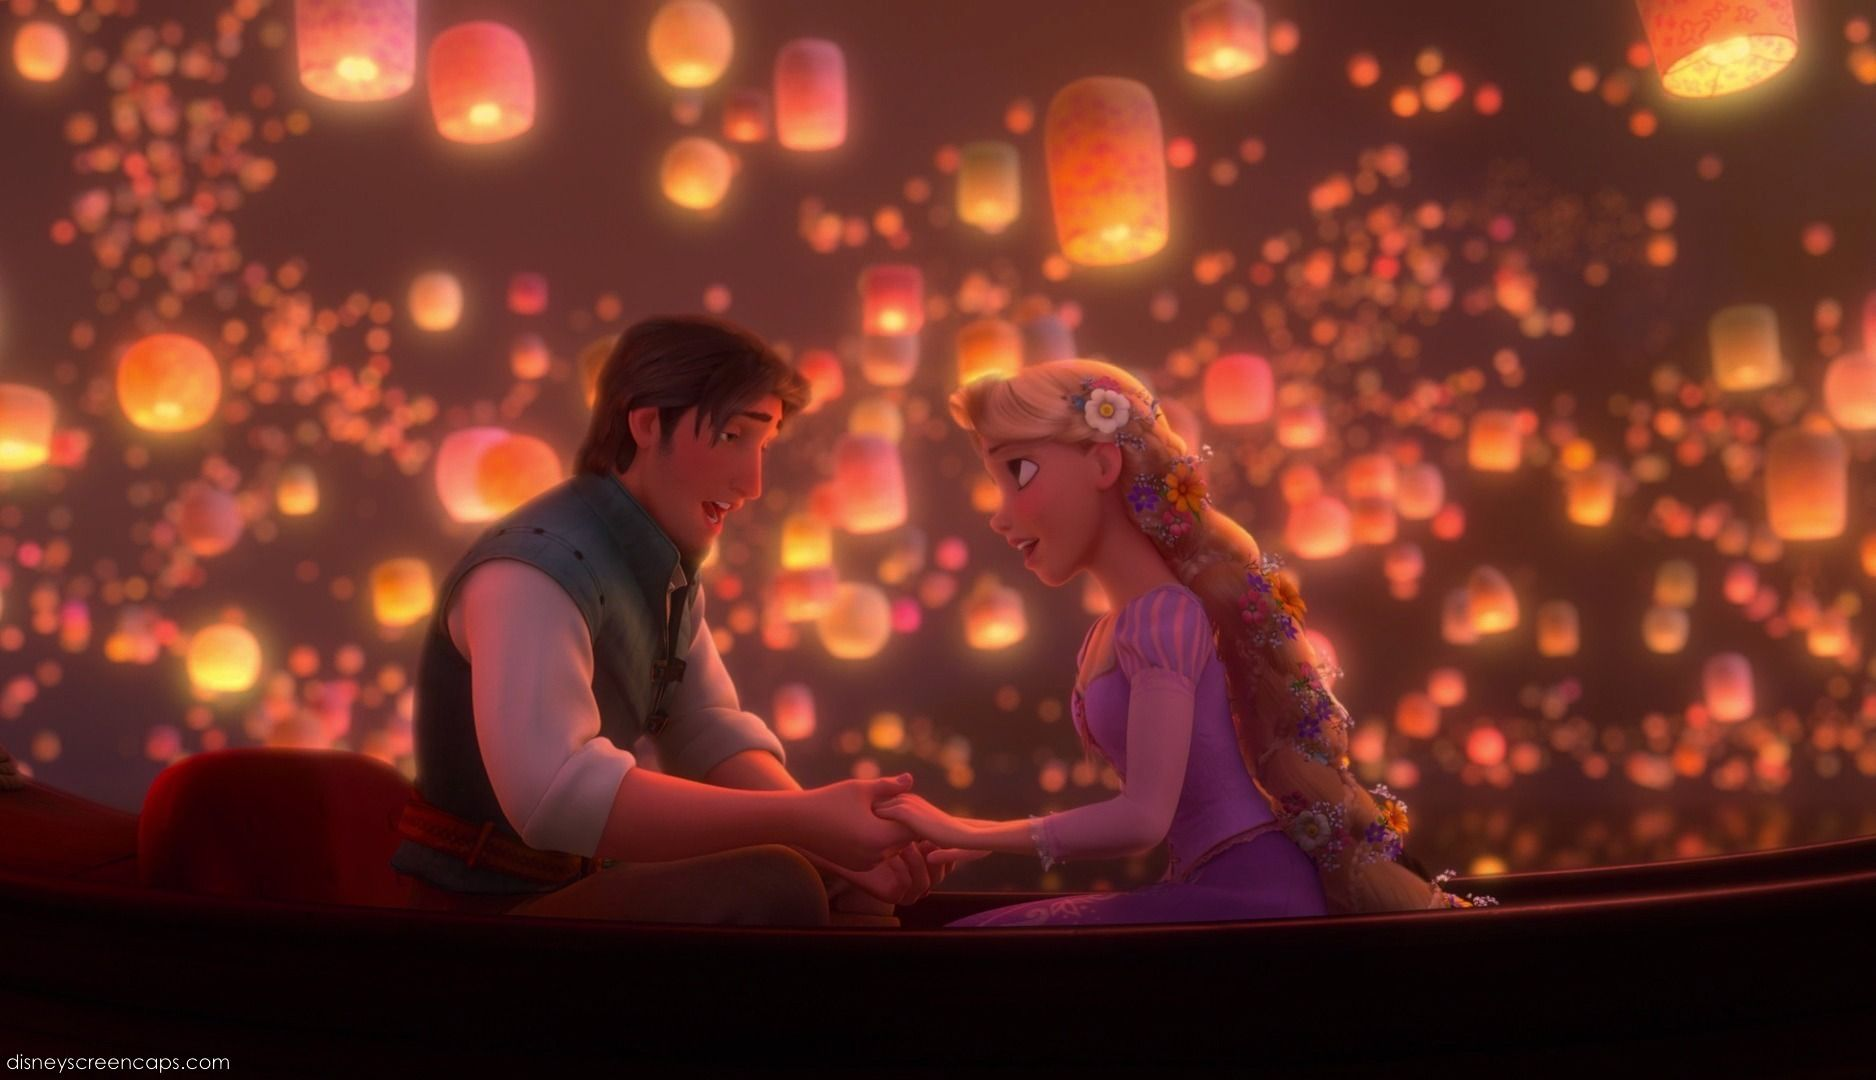 Tangled Movie Wallpapers Top Free Tangled Movie Backgrounds Wallpaperaccess